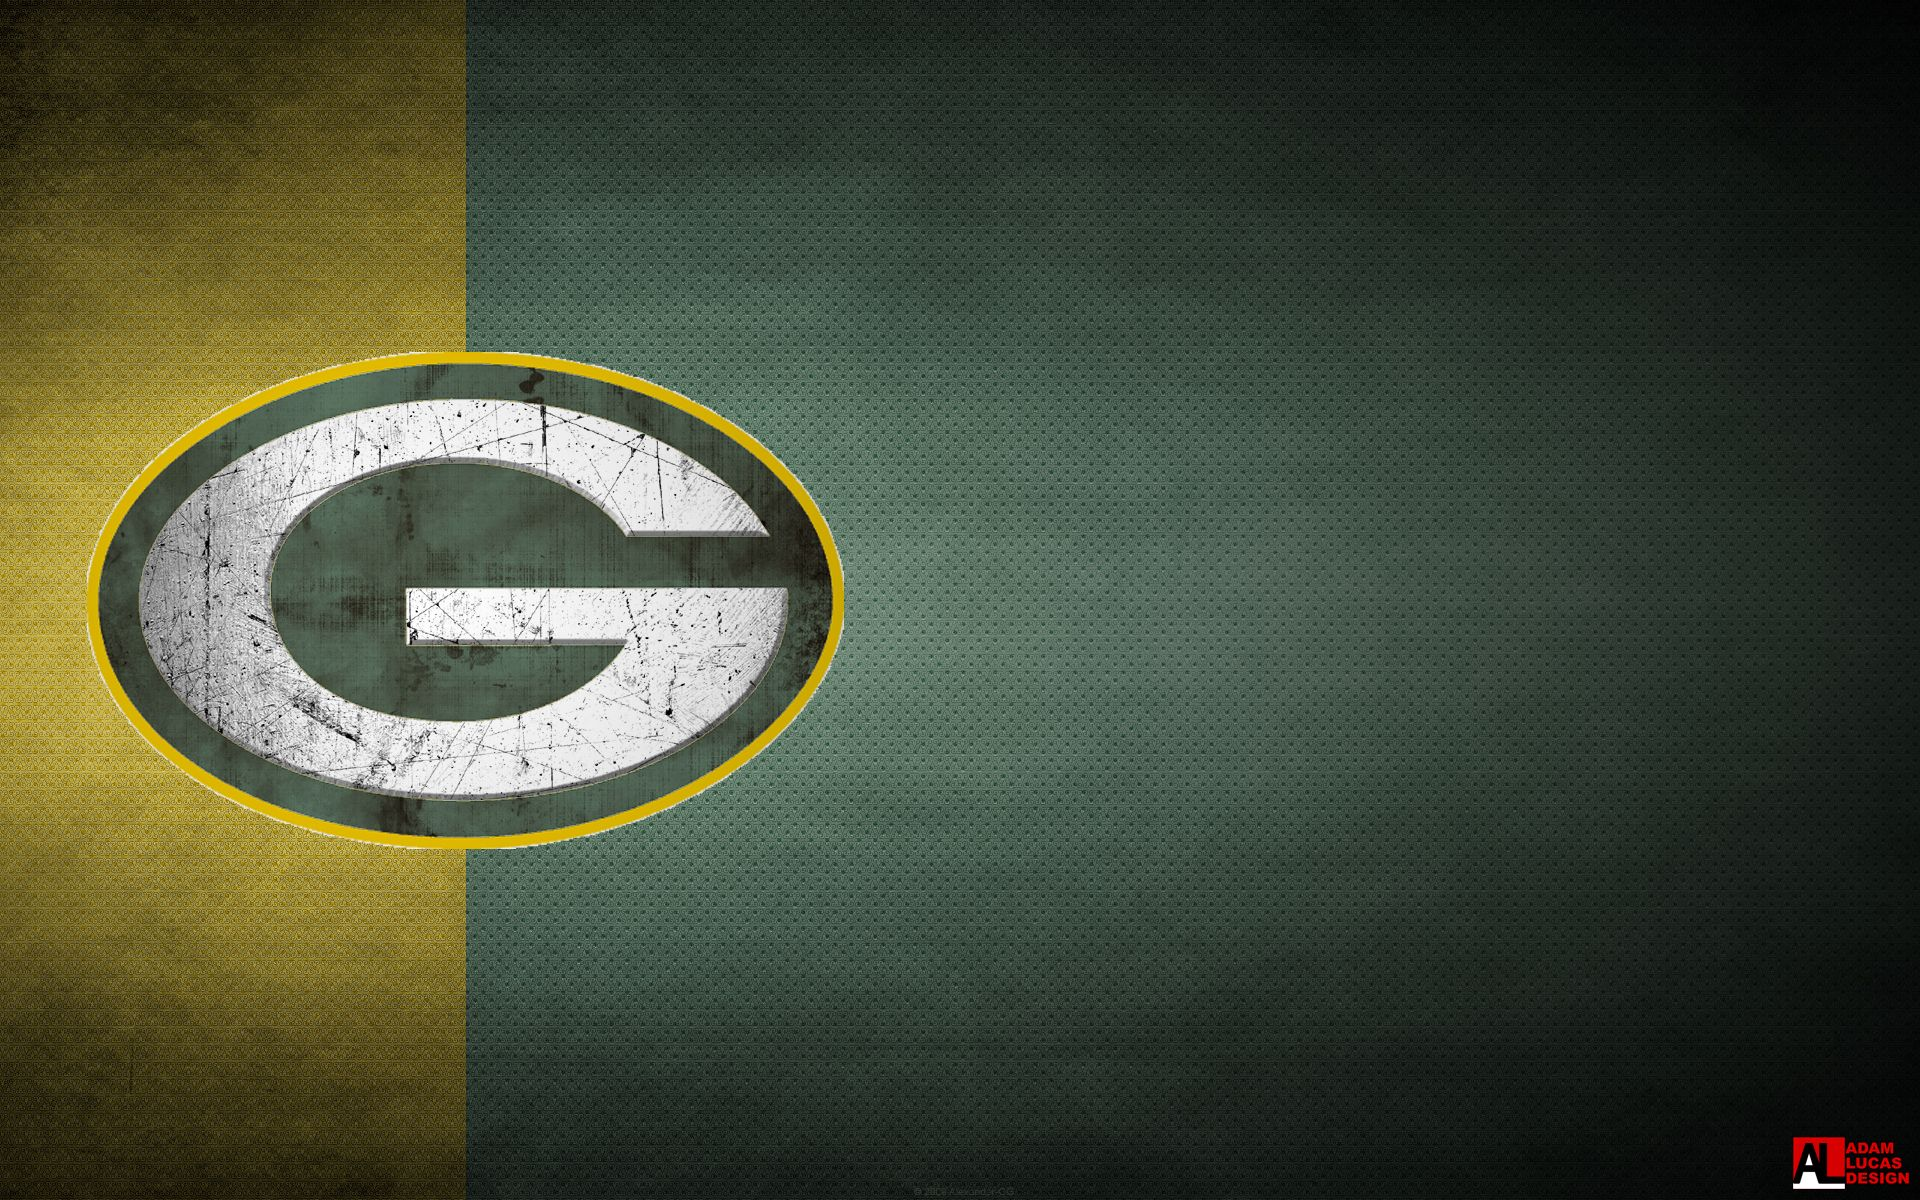 Hd Green Bay Packers Wallpaper Green Bay Packers Wallpaper Green Bay Packers Green Bay